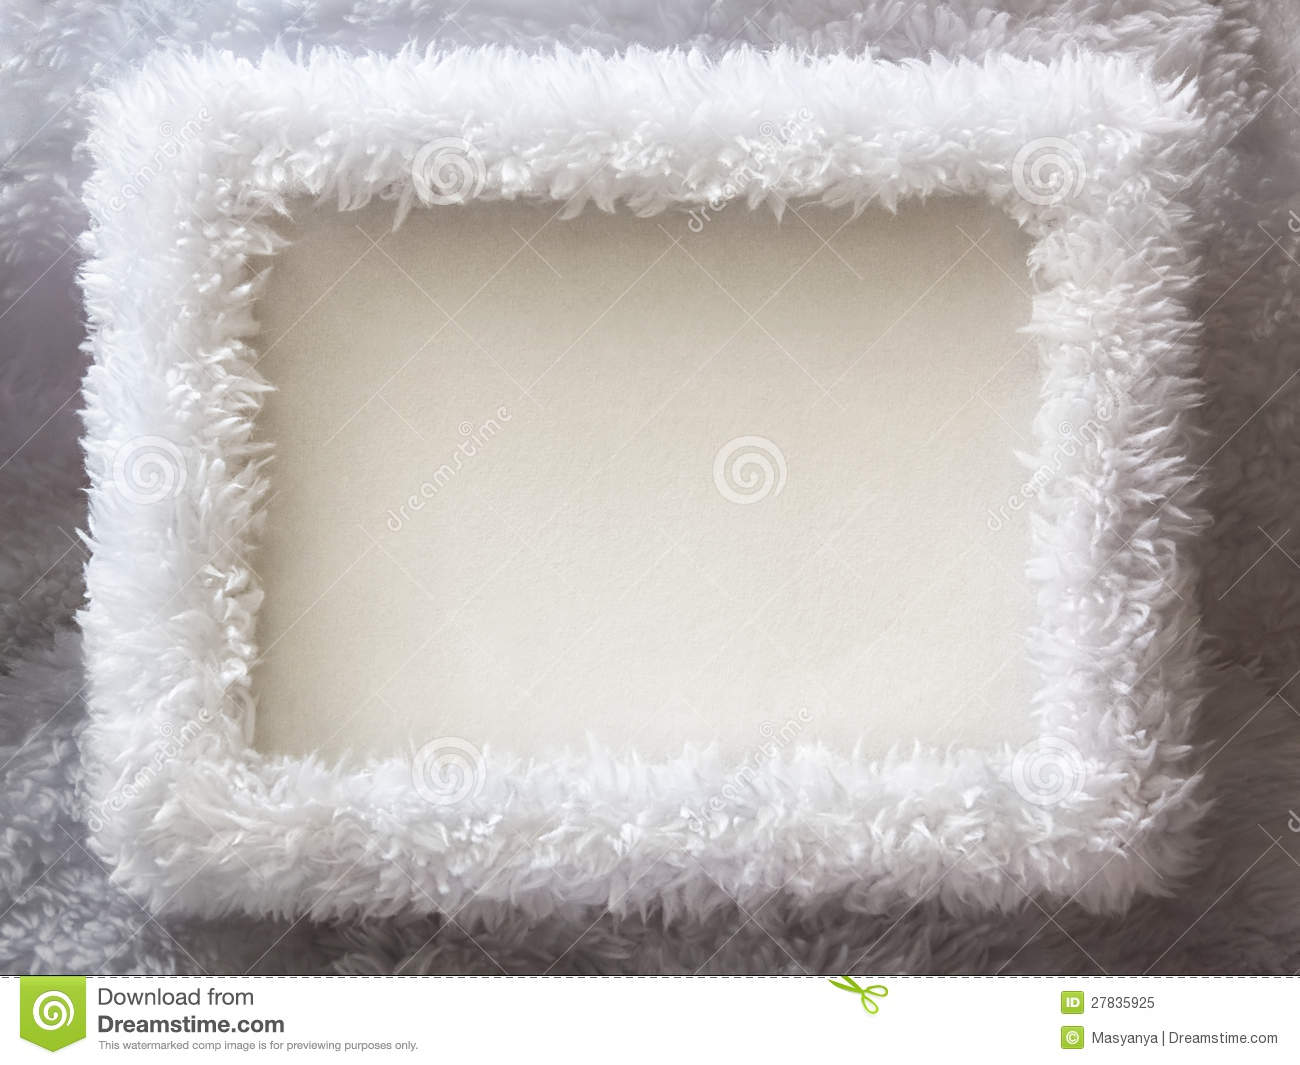 White Fur Winter Frame Background Stock Image - Image of celebrate ...